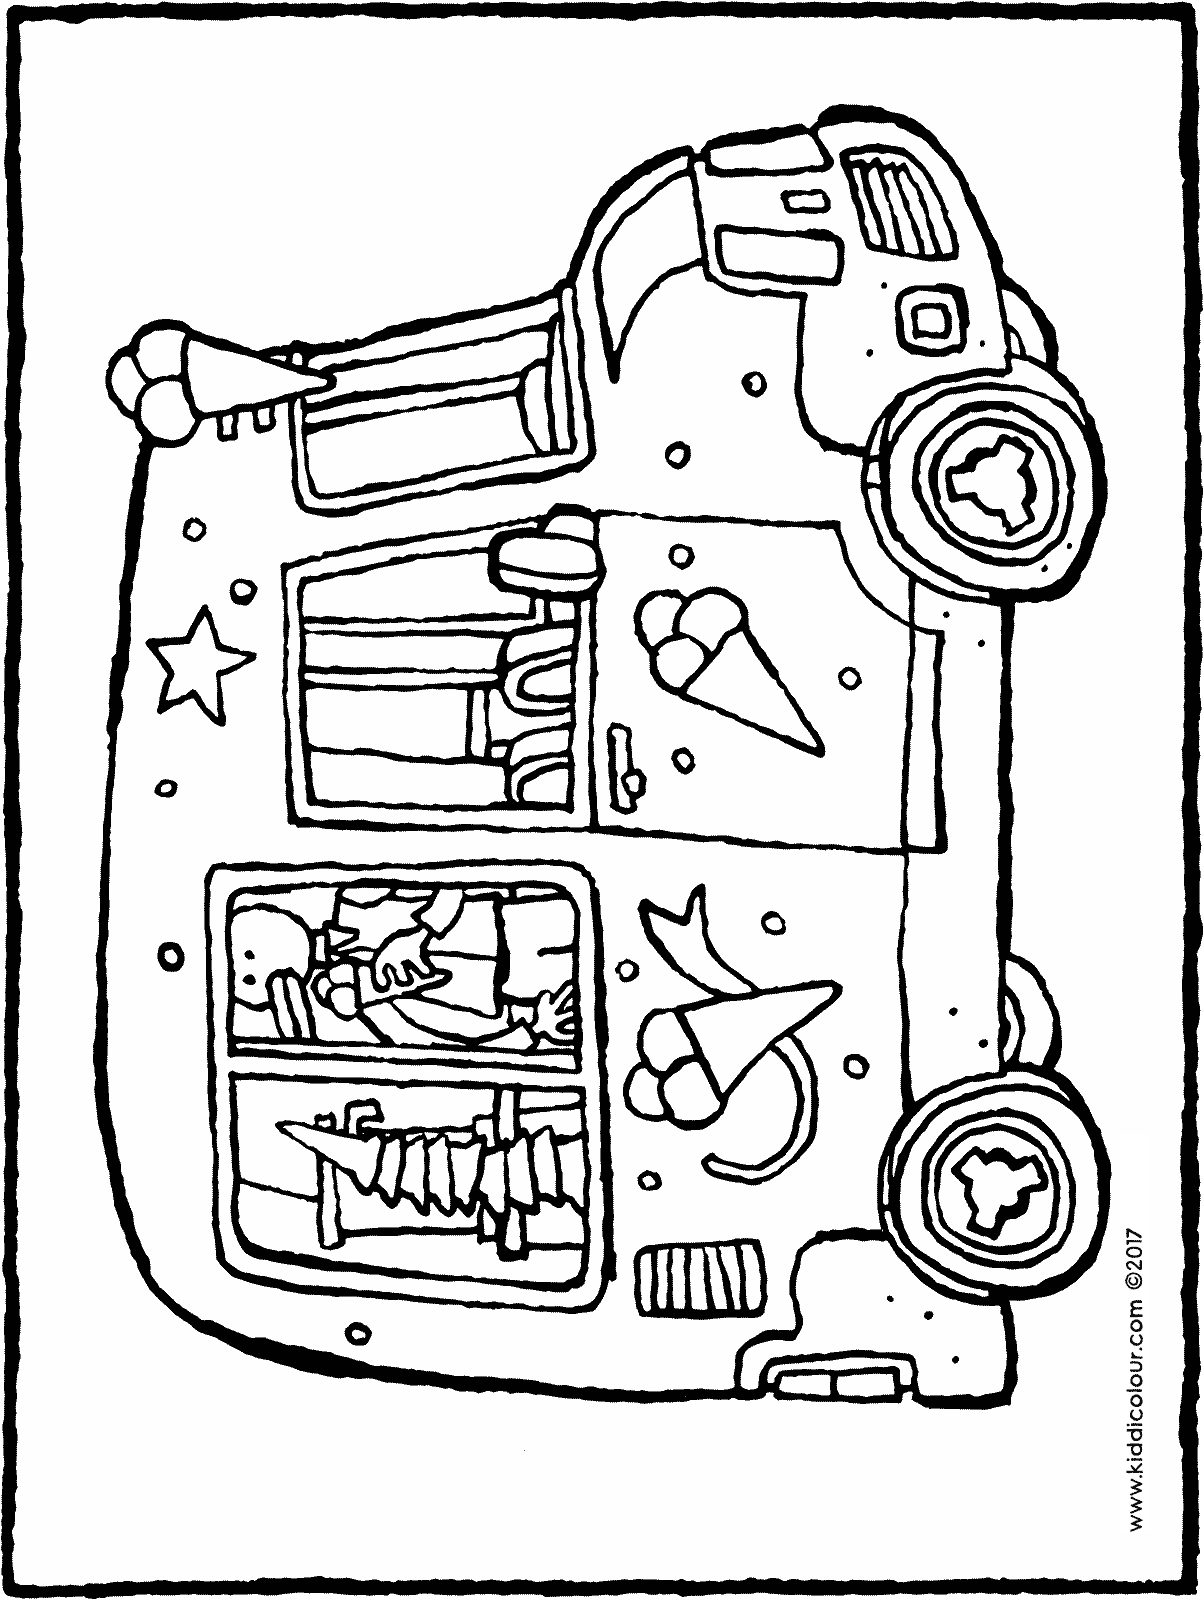 ice-cream van colouring page drawing picture 01H